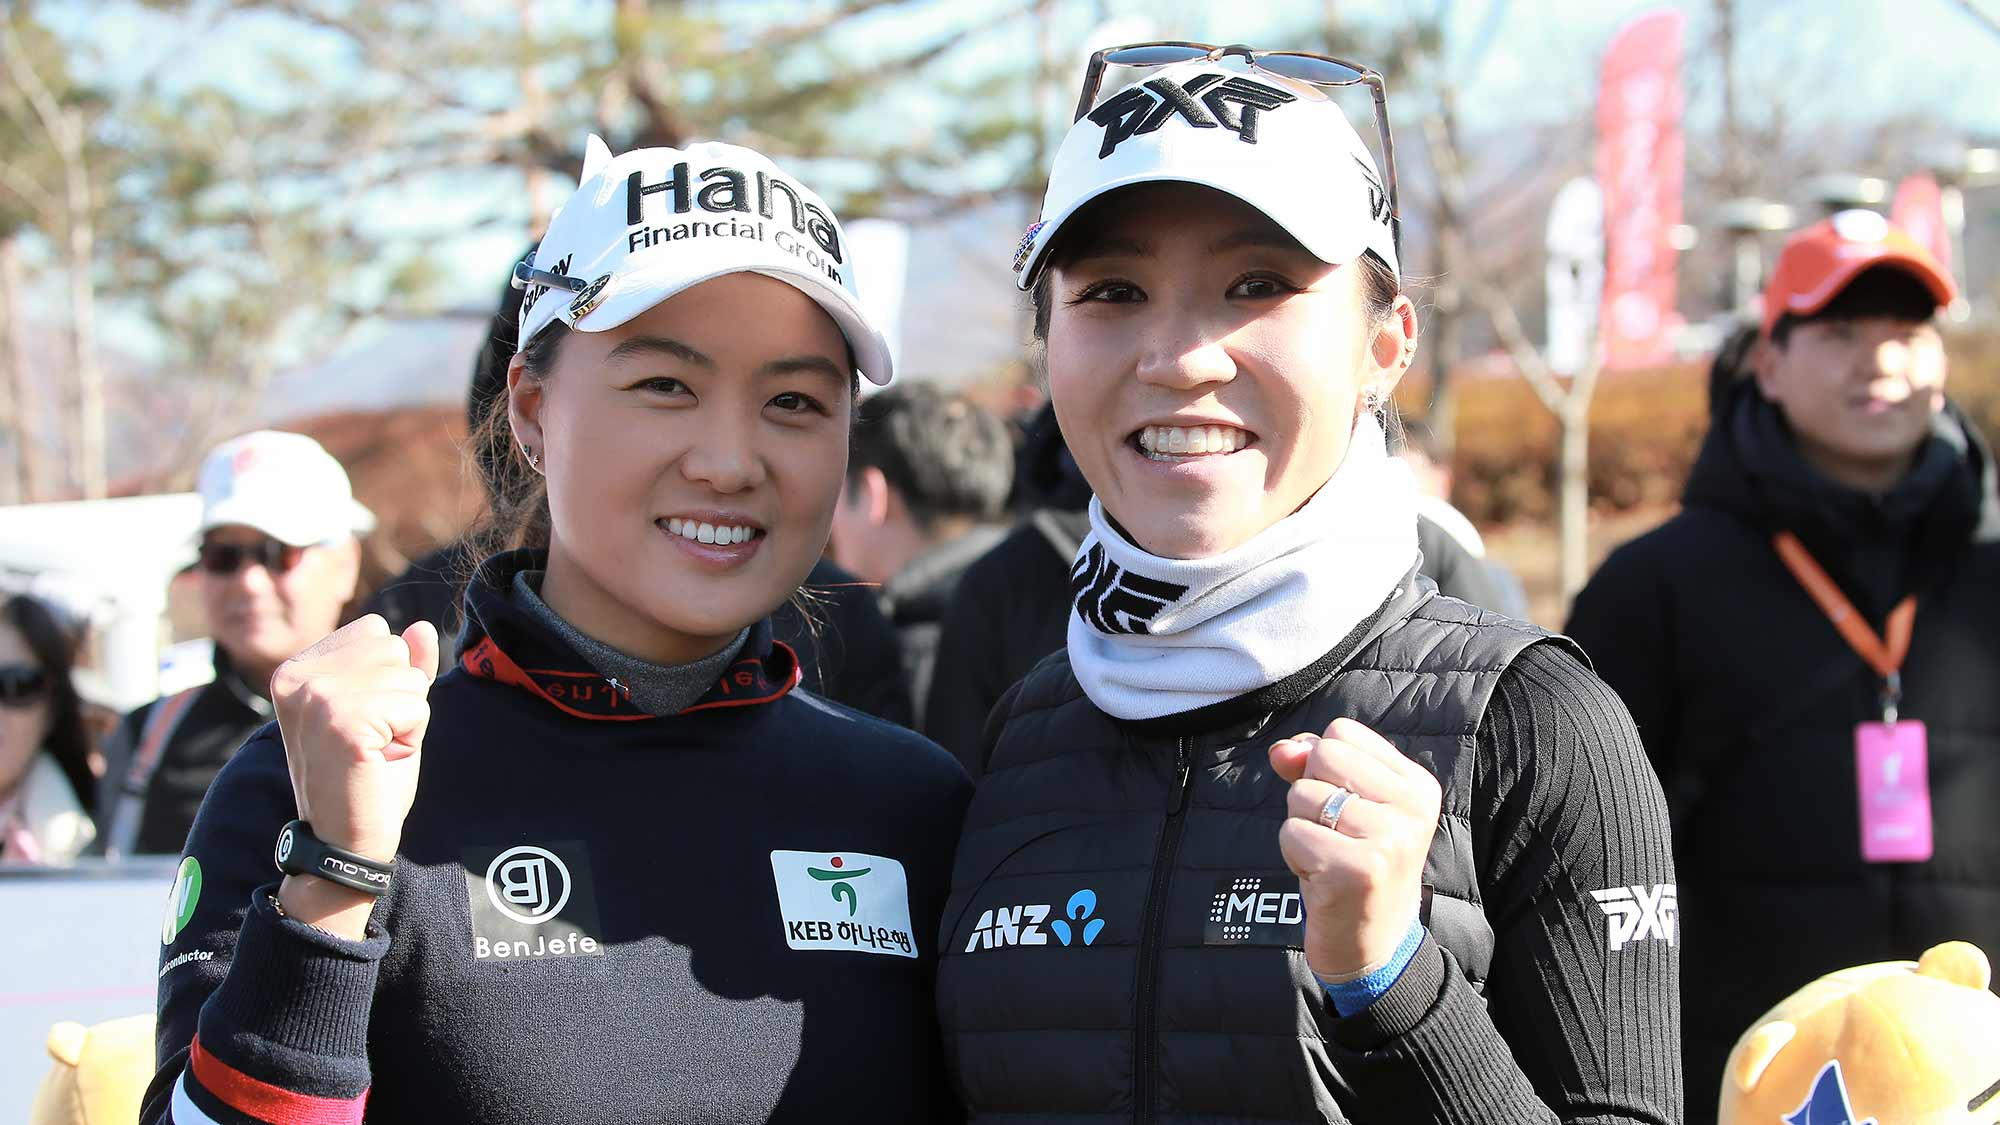 Minjee Lee and Lydia Ko pose for a photo during the Orange Life Champions Trophy Inbee Park Invitational at Blue One The Honors Country Club in Gyeongju, Republic of Korea